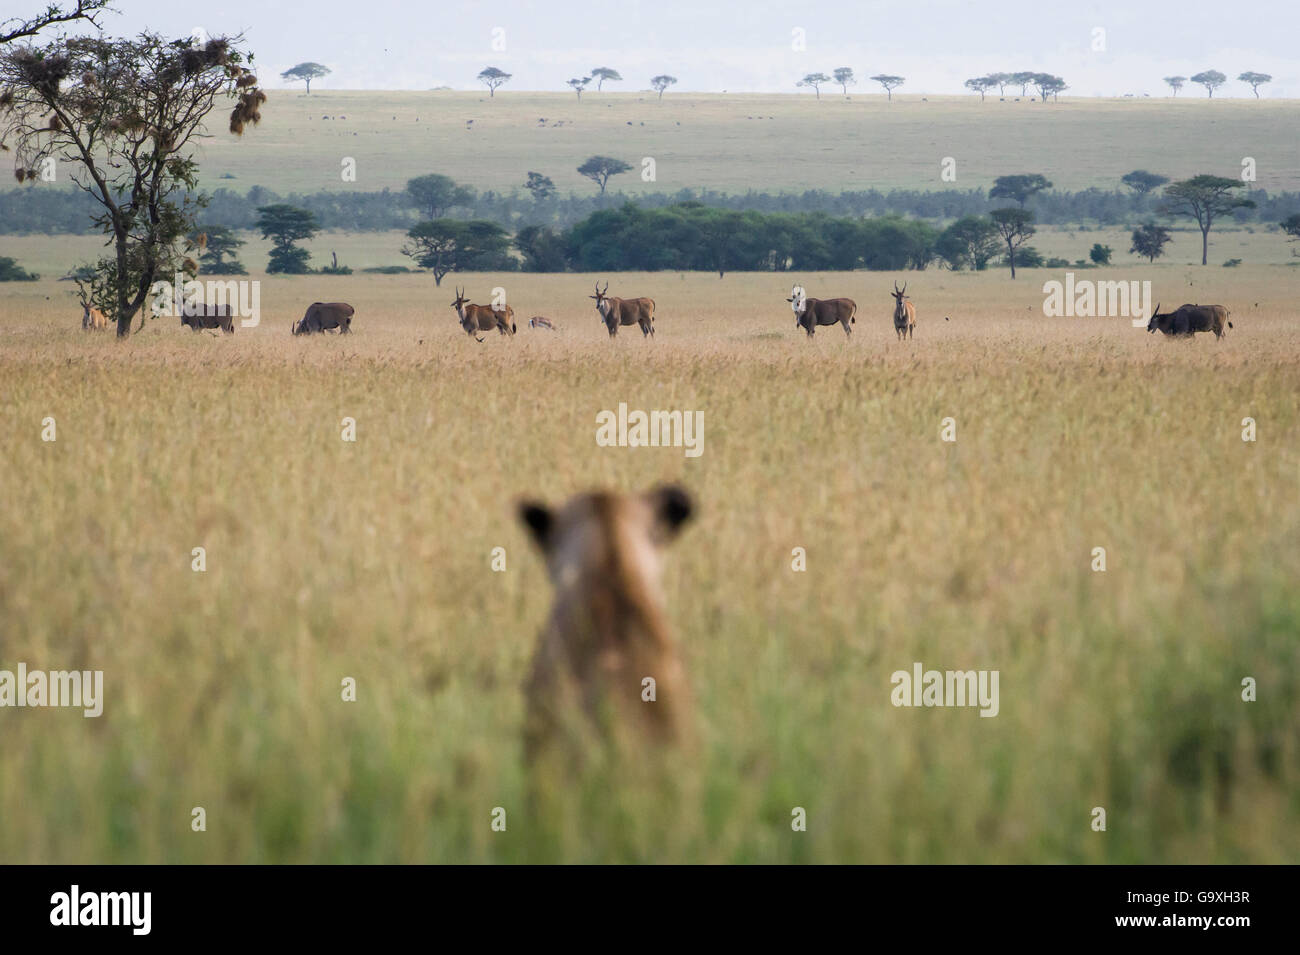 African lioness (Panthera leo) sitting patiently in the long grass, watching herd of Common eland (Tragelaphus oryx). - Stock Image